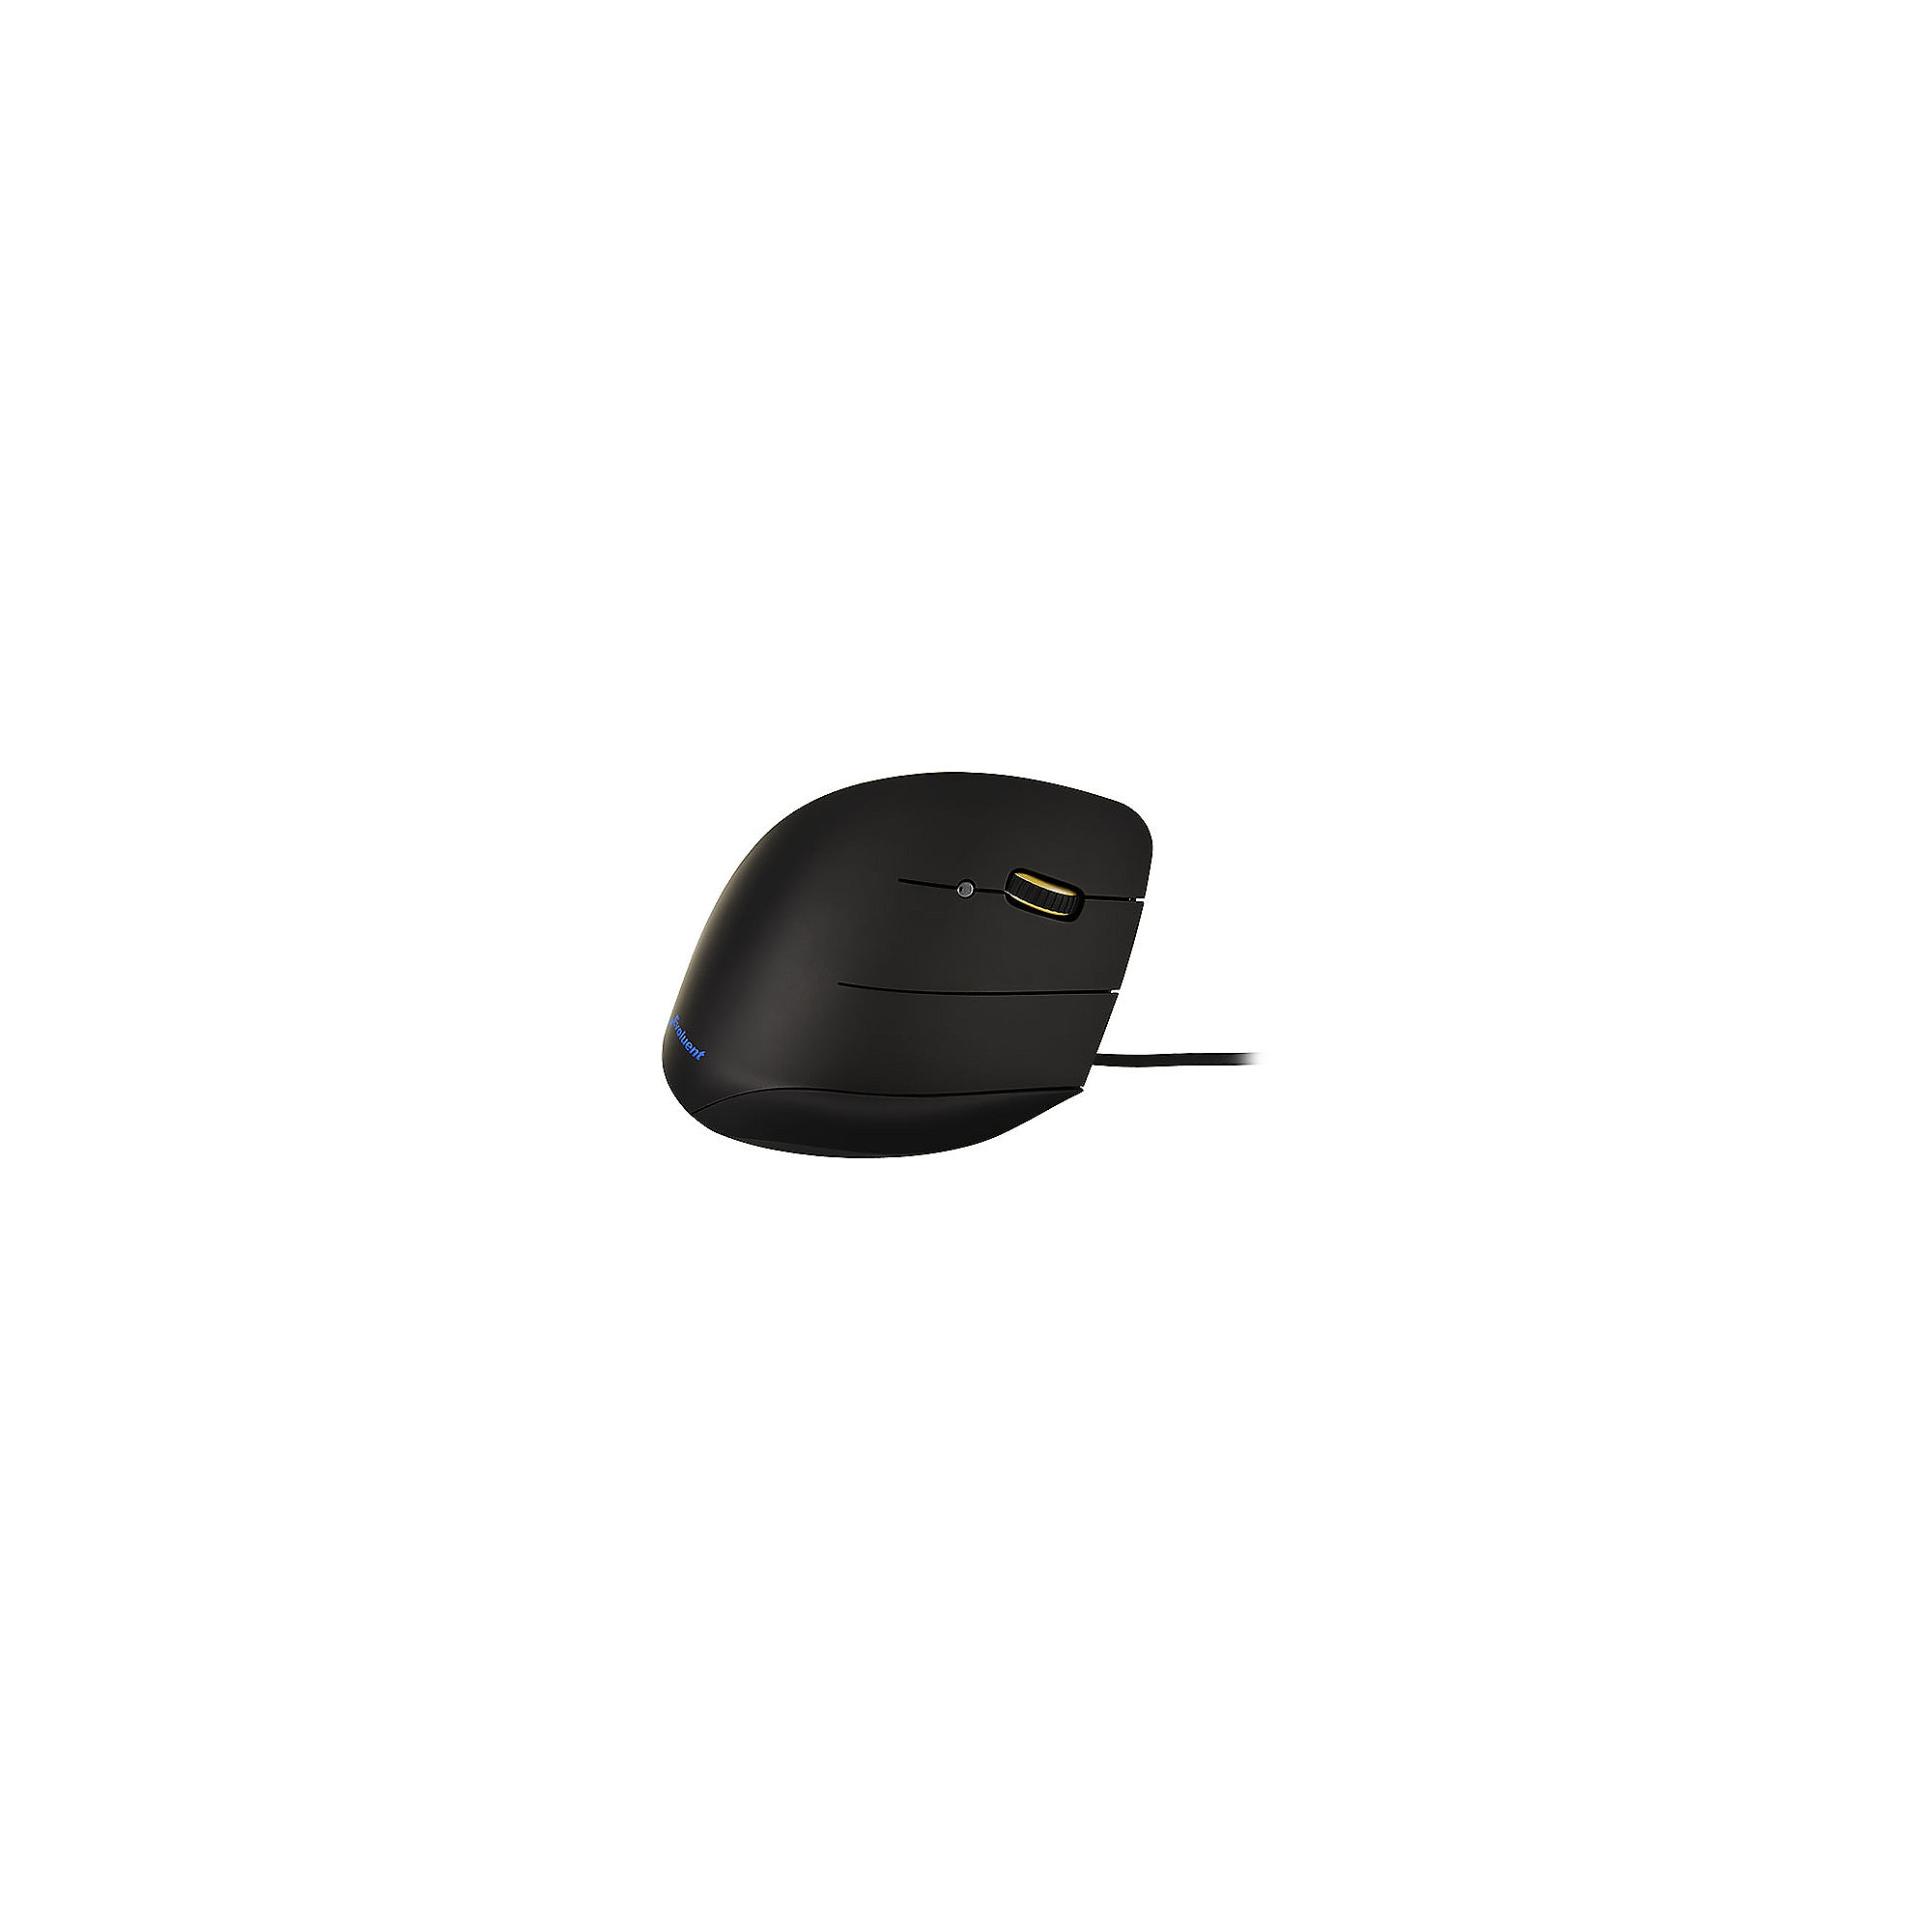 Evoluent VMCR VerticalMouse C Right